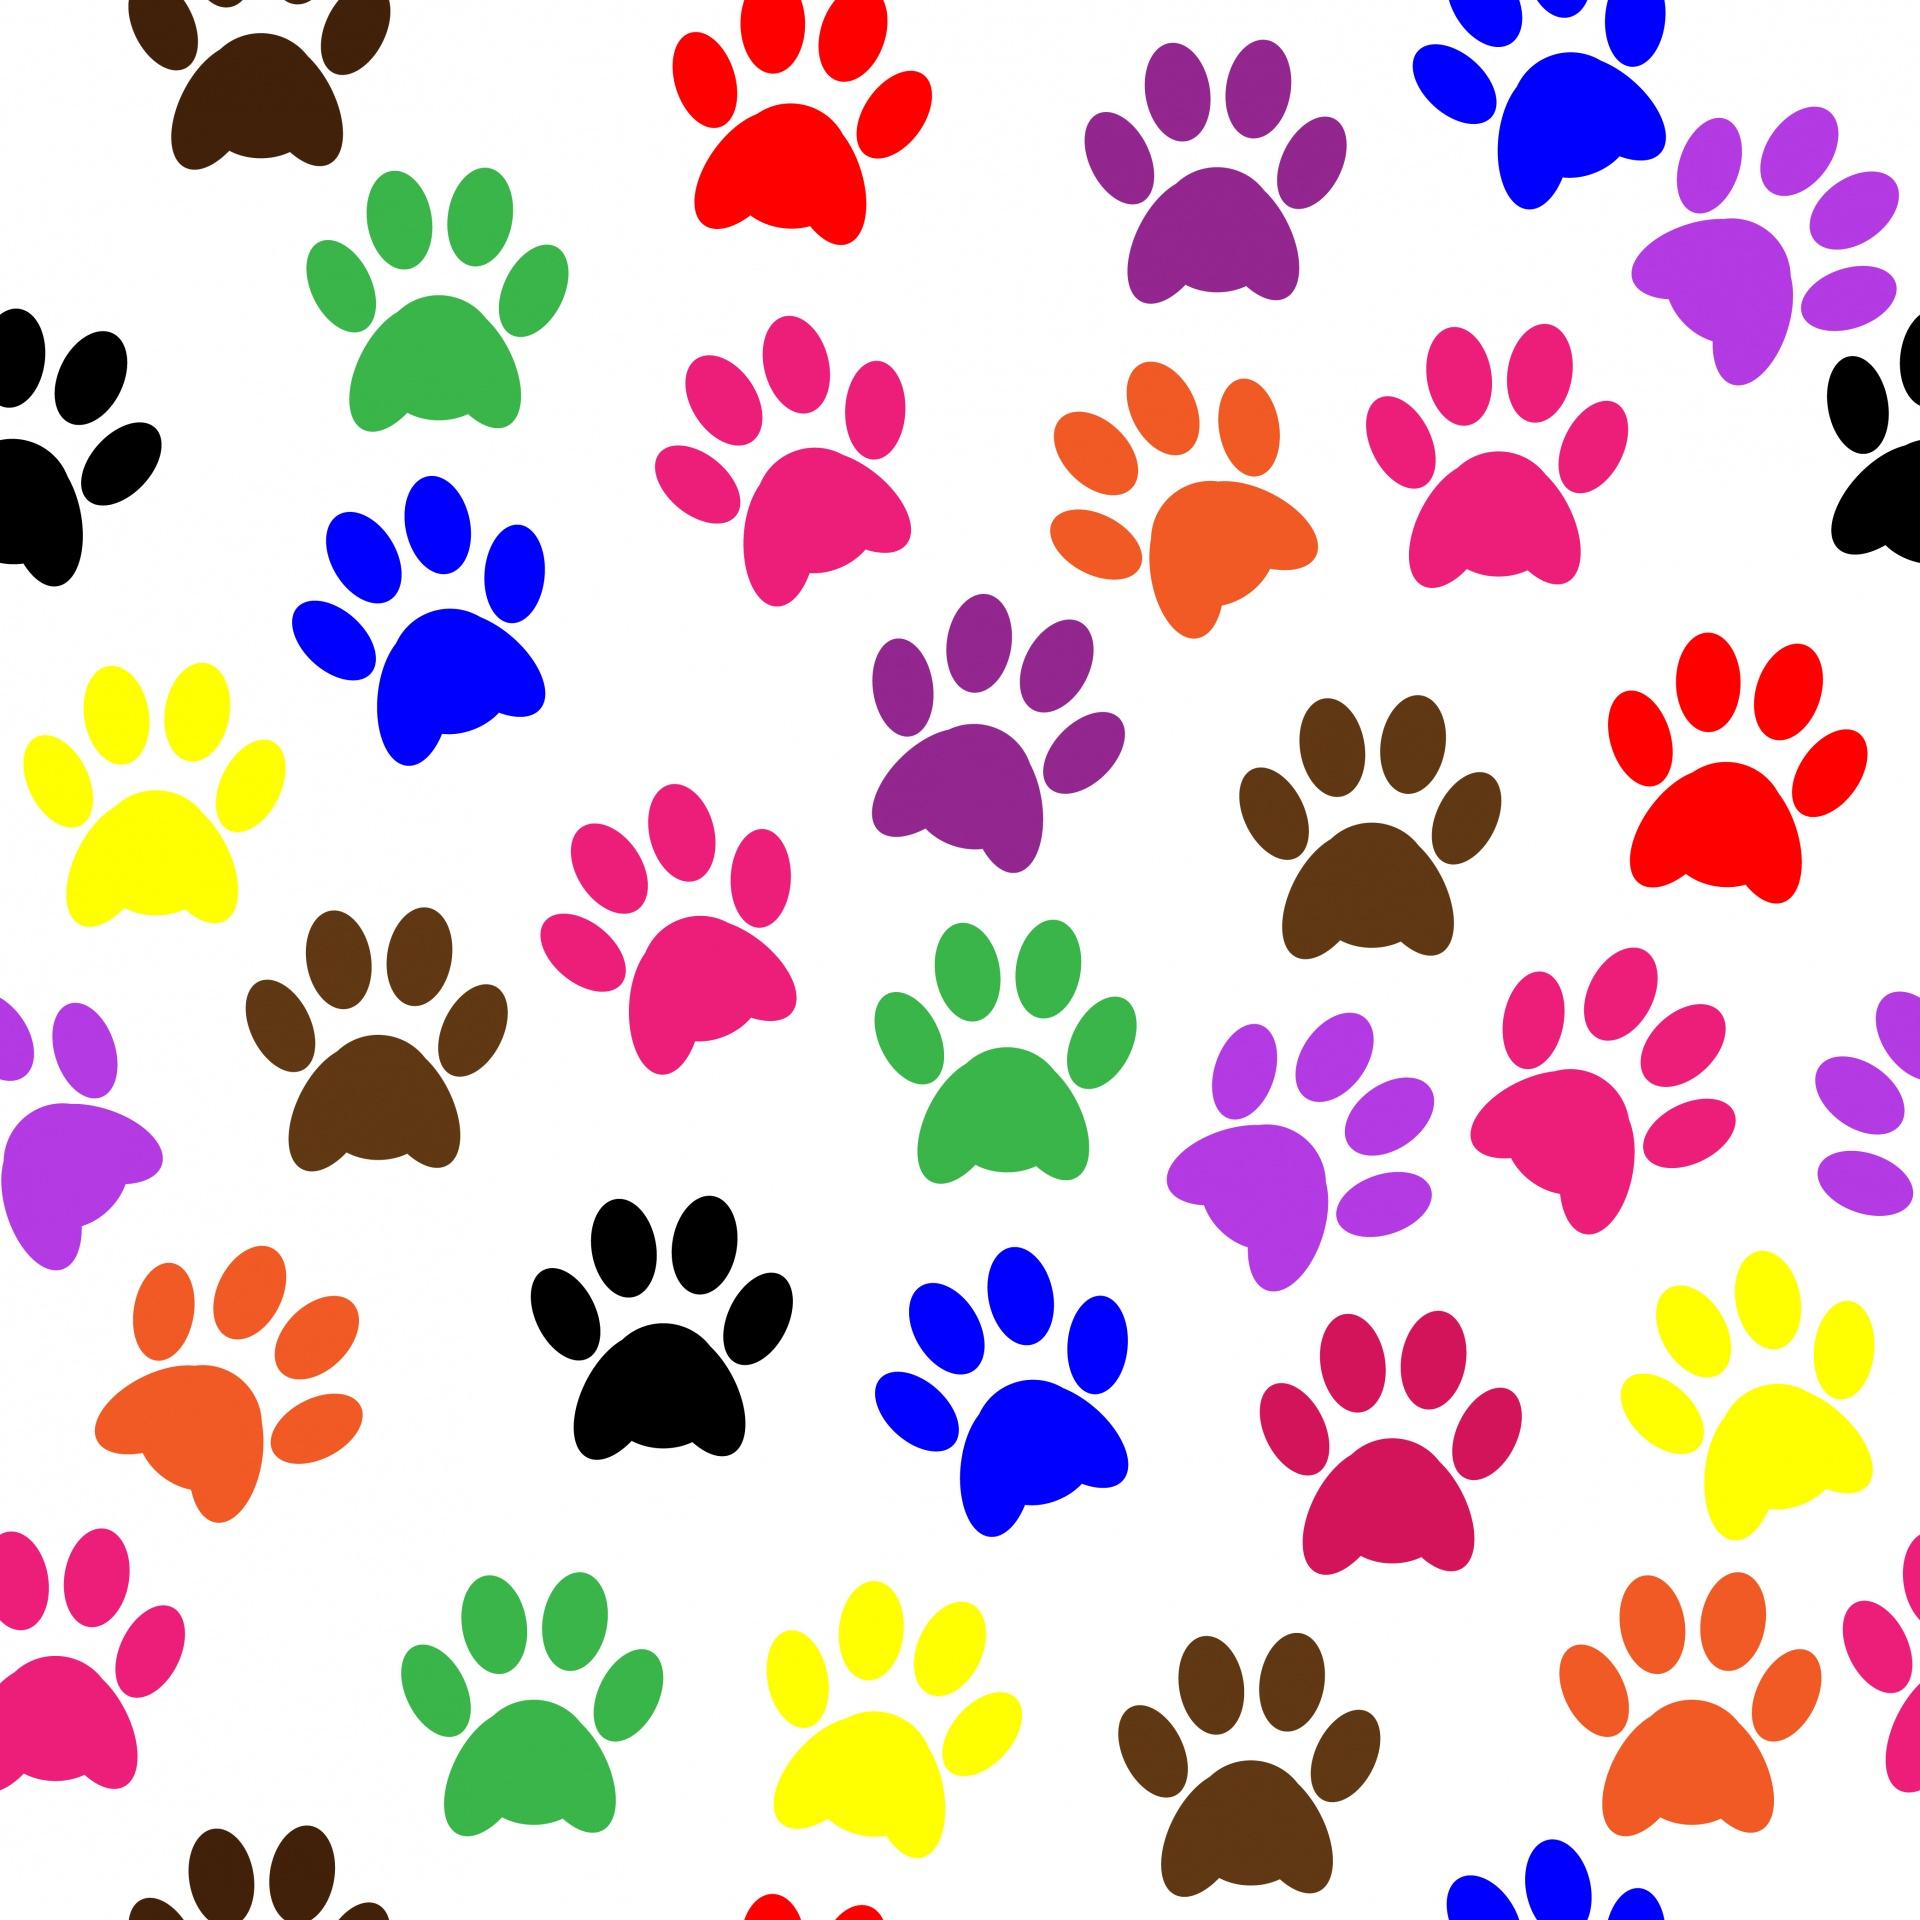 1920x1920 Paw Prints Colorful Wallpaper Free Stock Photo